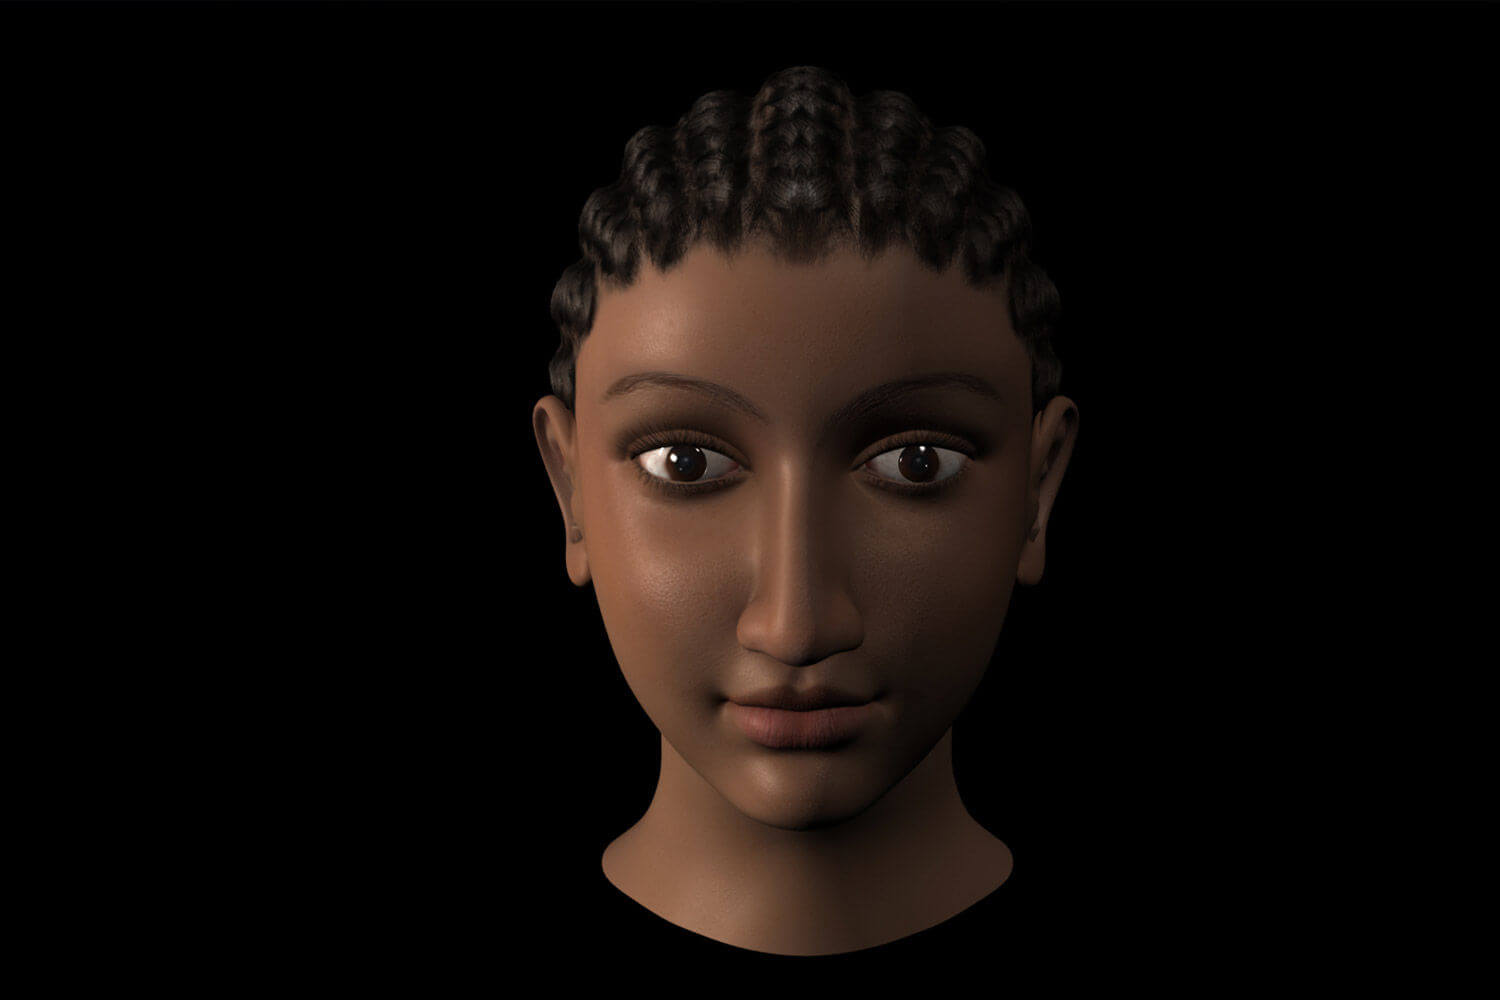 Render Visualisation of the Real Face of Cleopatra